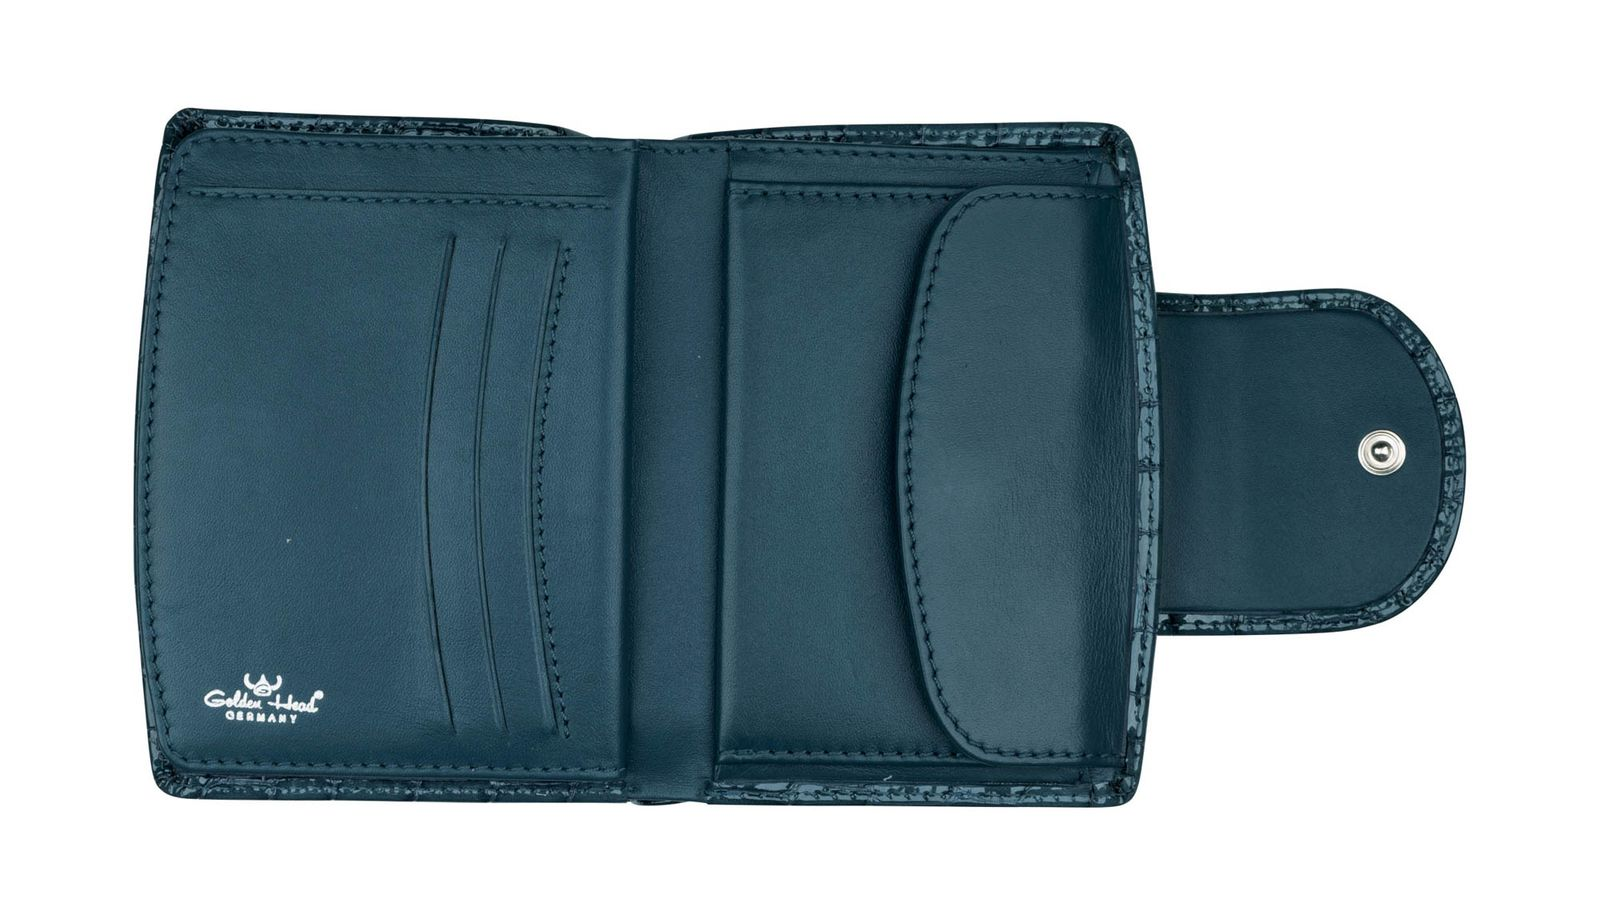 Golden Head Cayenne Billfold Coin Wallet with Snap Closure Blue